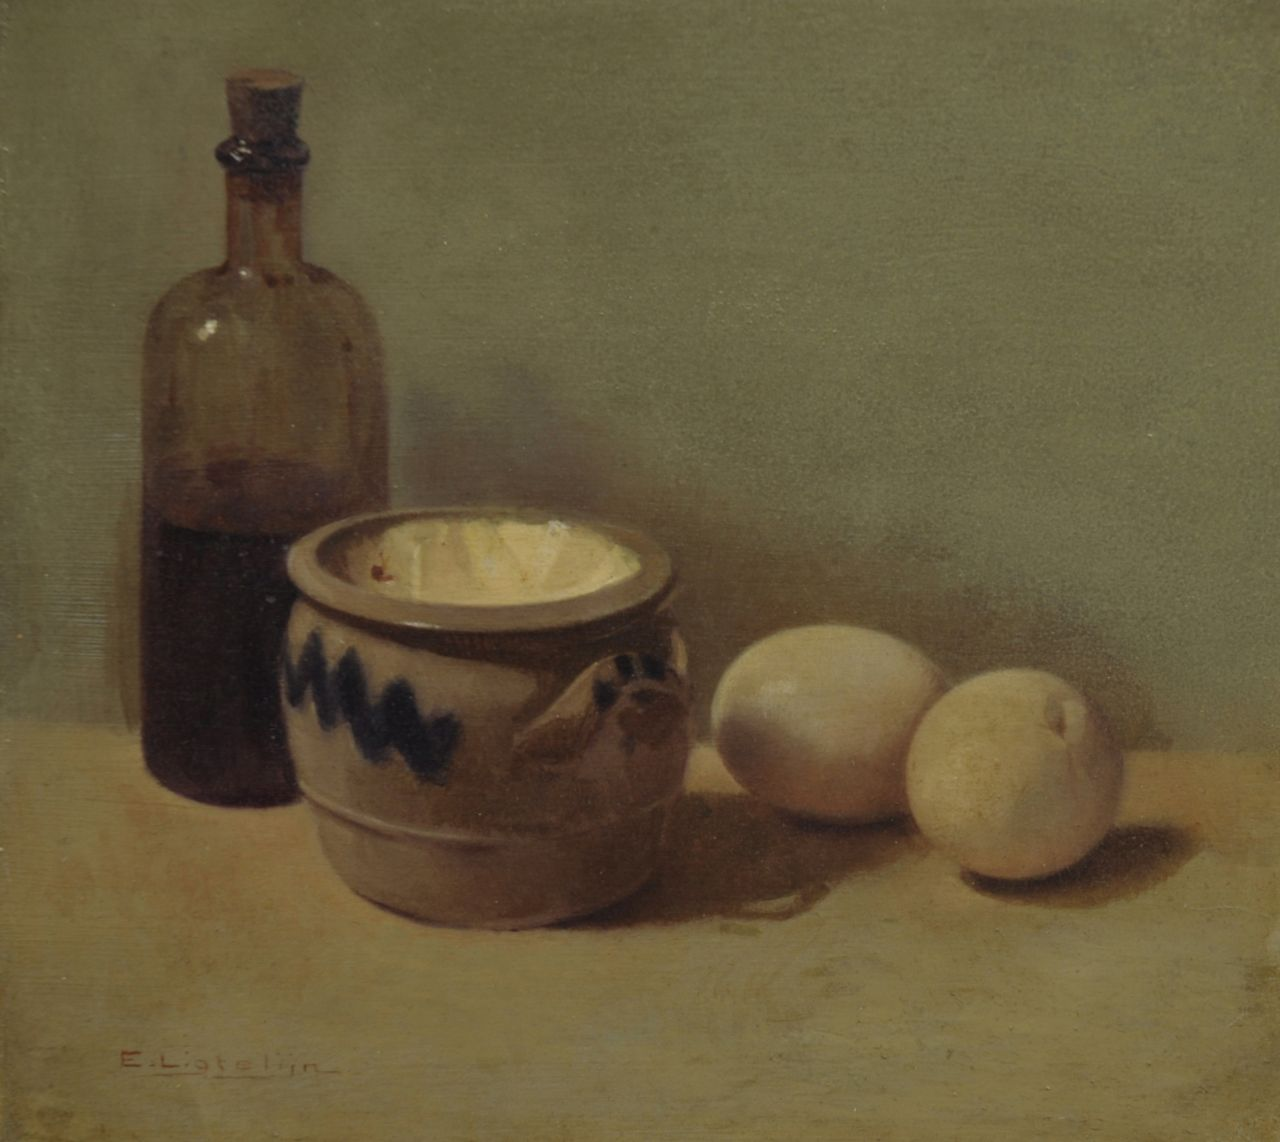 Ligtelijn E.J.  | Evert Jan Ligtelijn, A still life with eggs, oil on panel 23.2 x 25.9 cm, signed l.l.